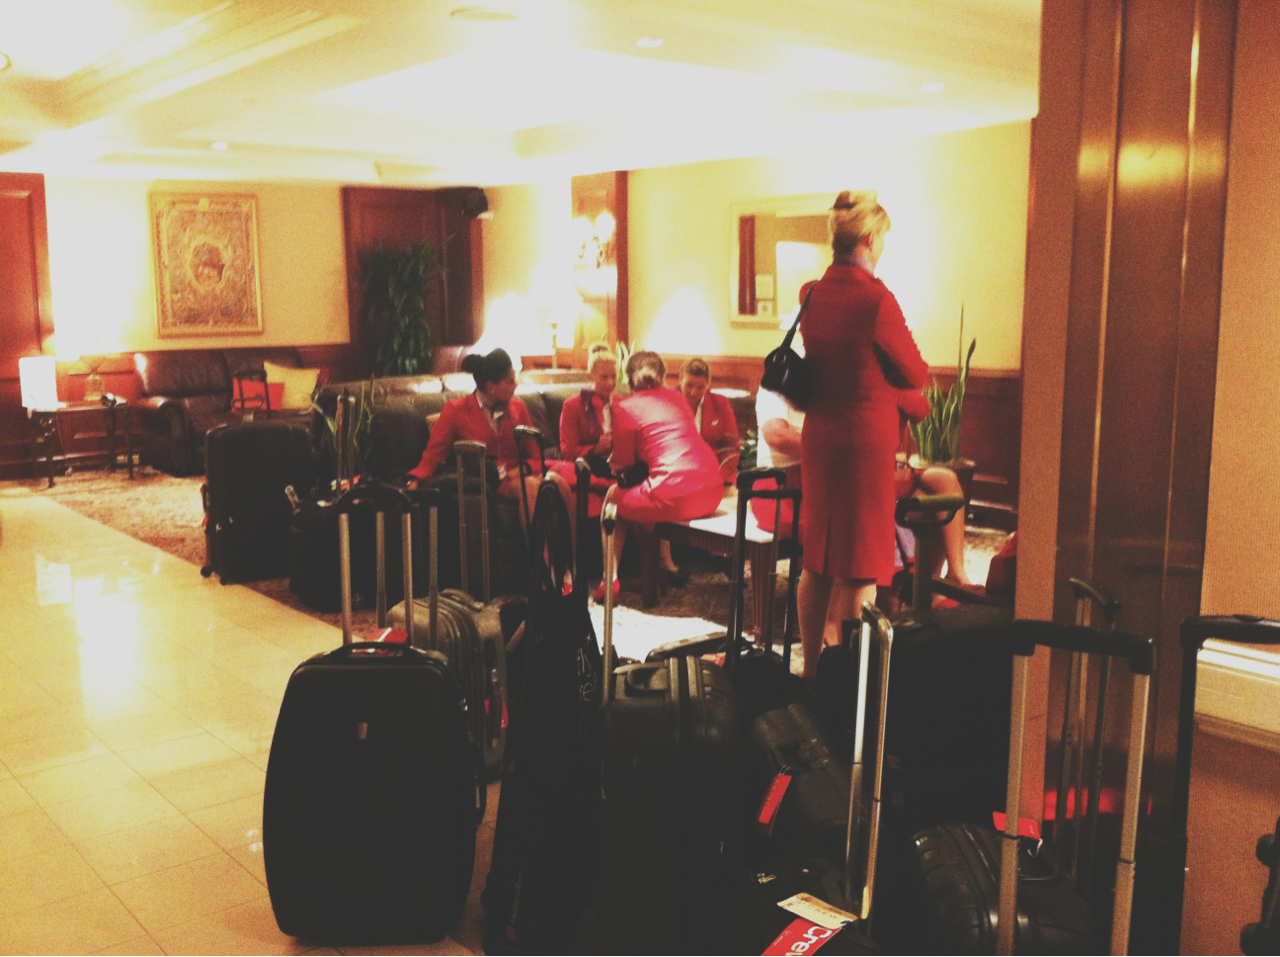 #la #air #hostess #hotel #red #suitcases